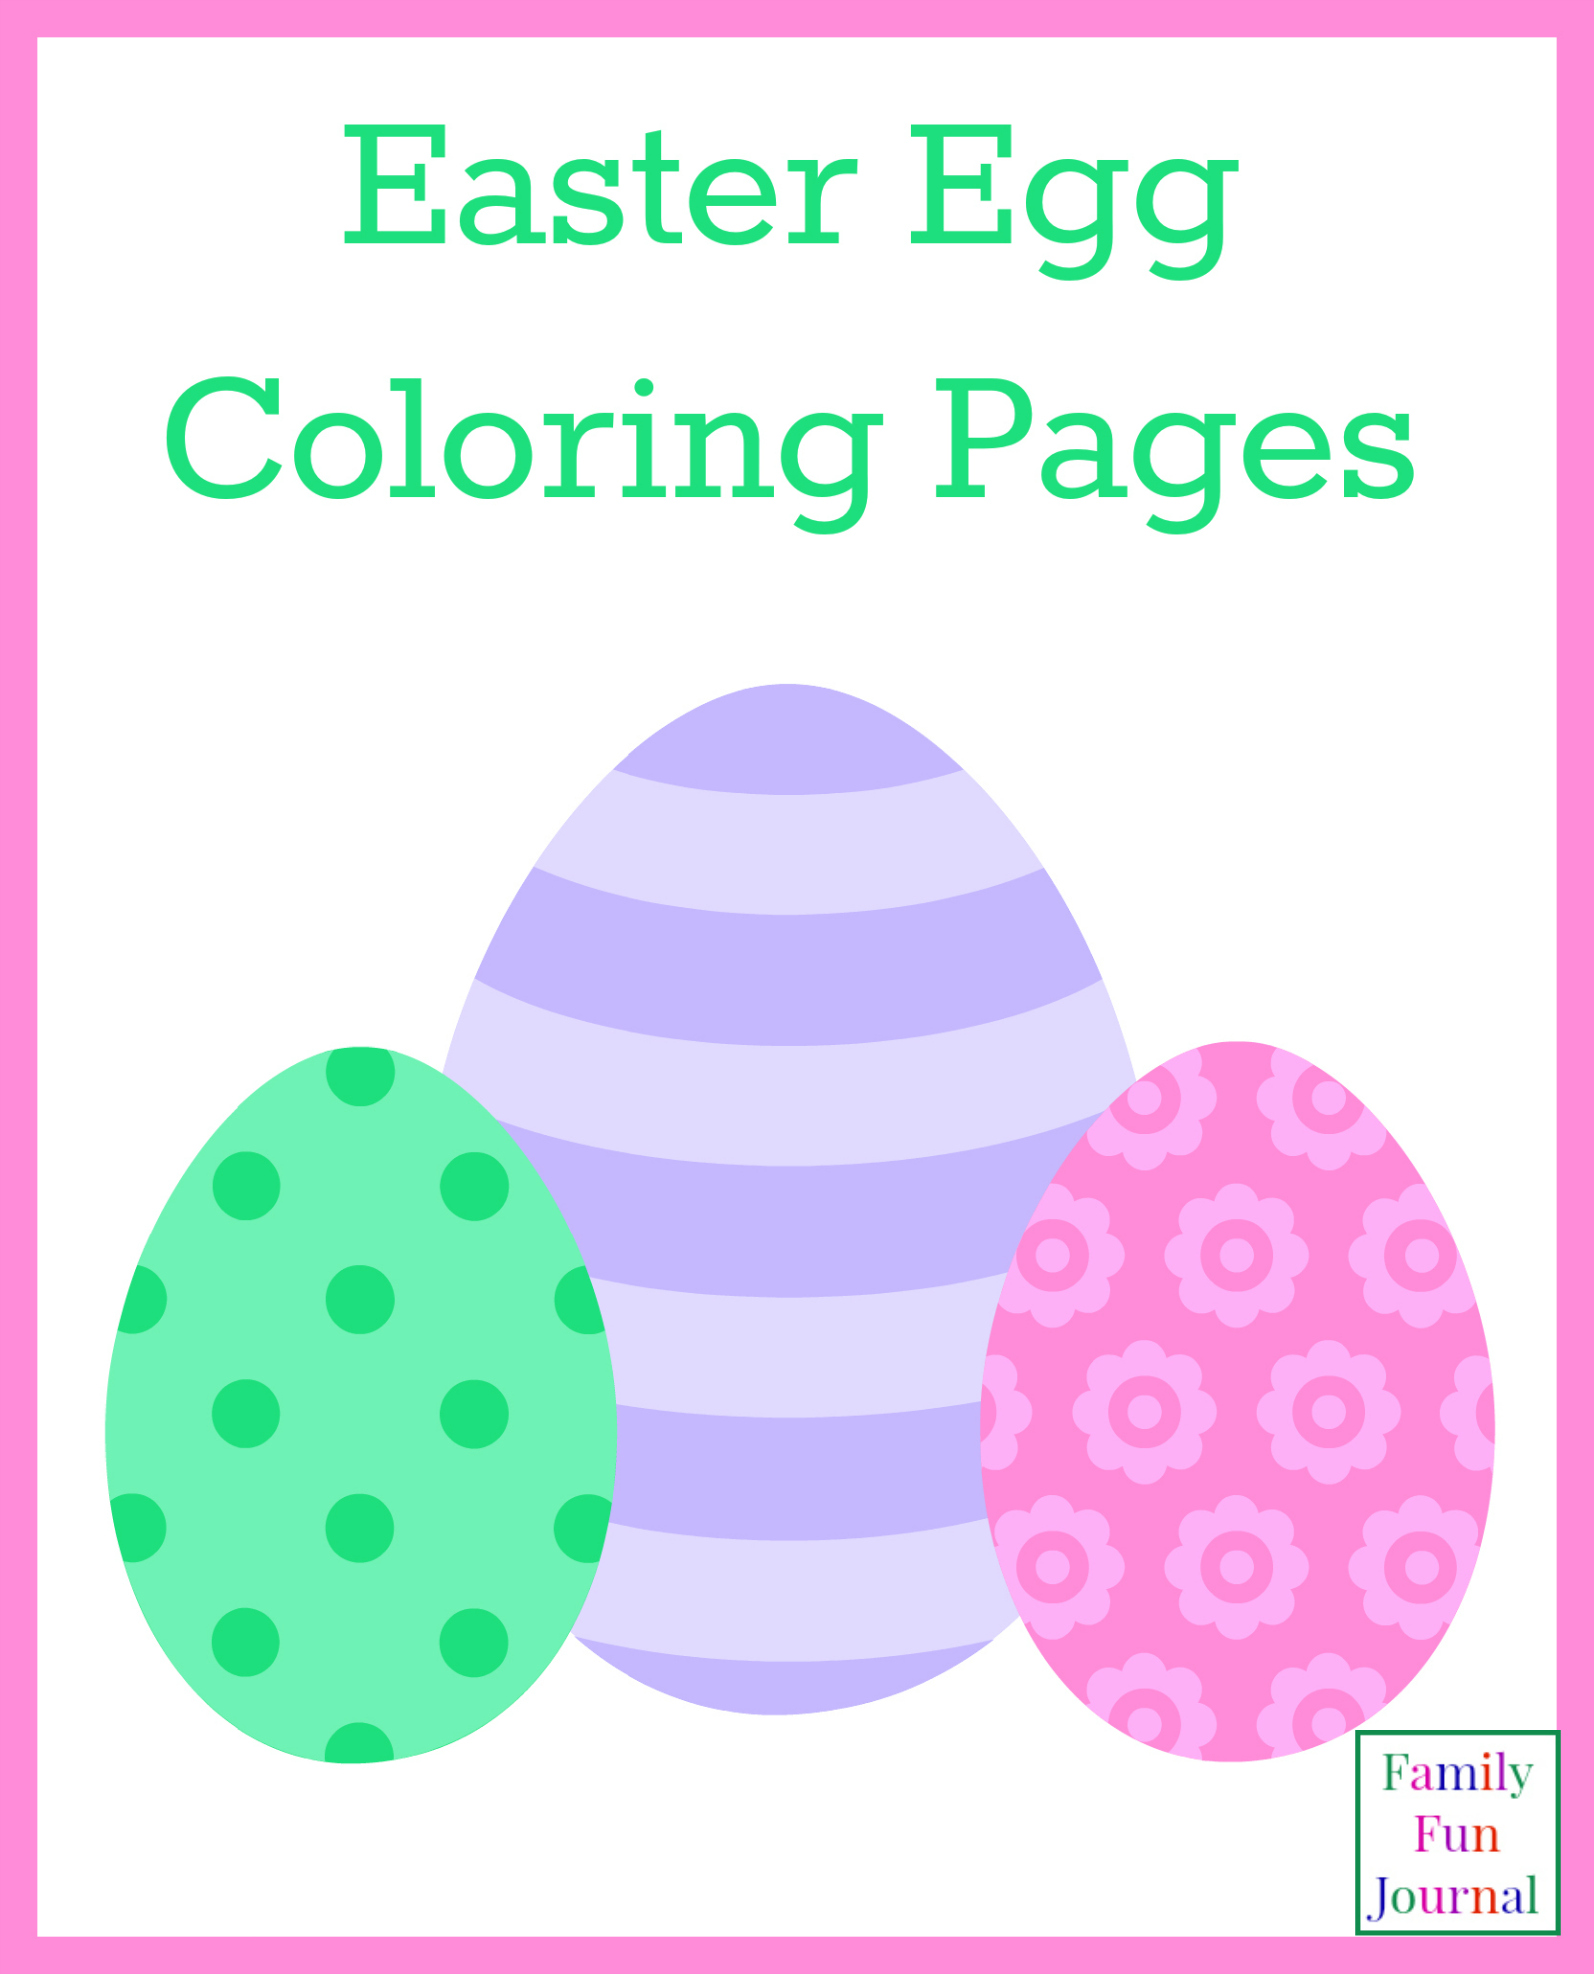 family fun easter coloring pages - photo#10